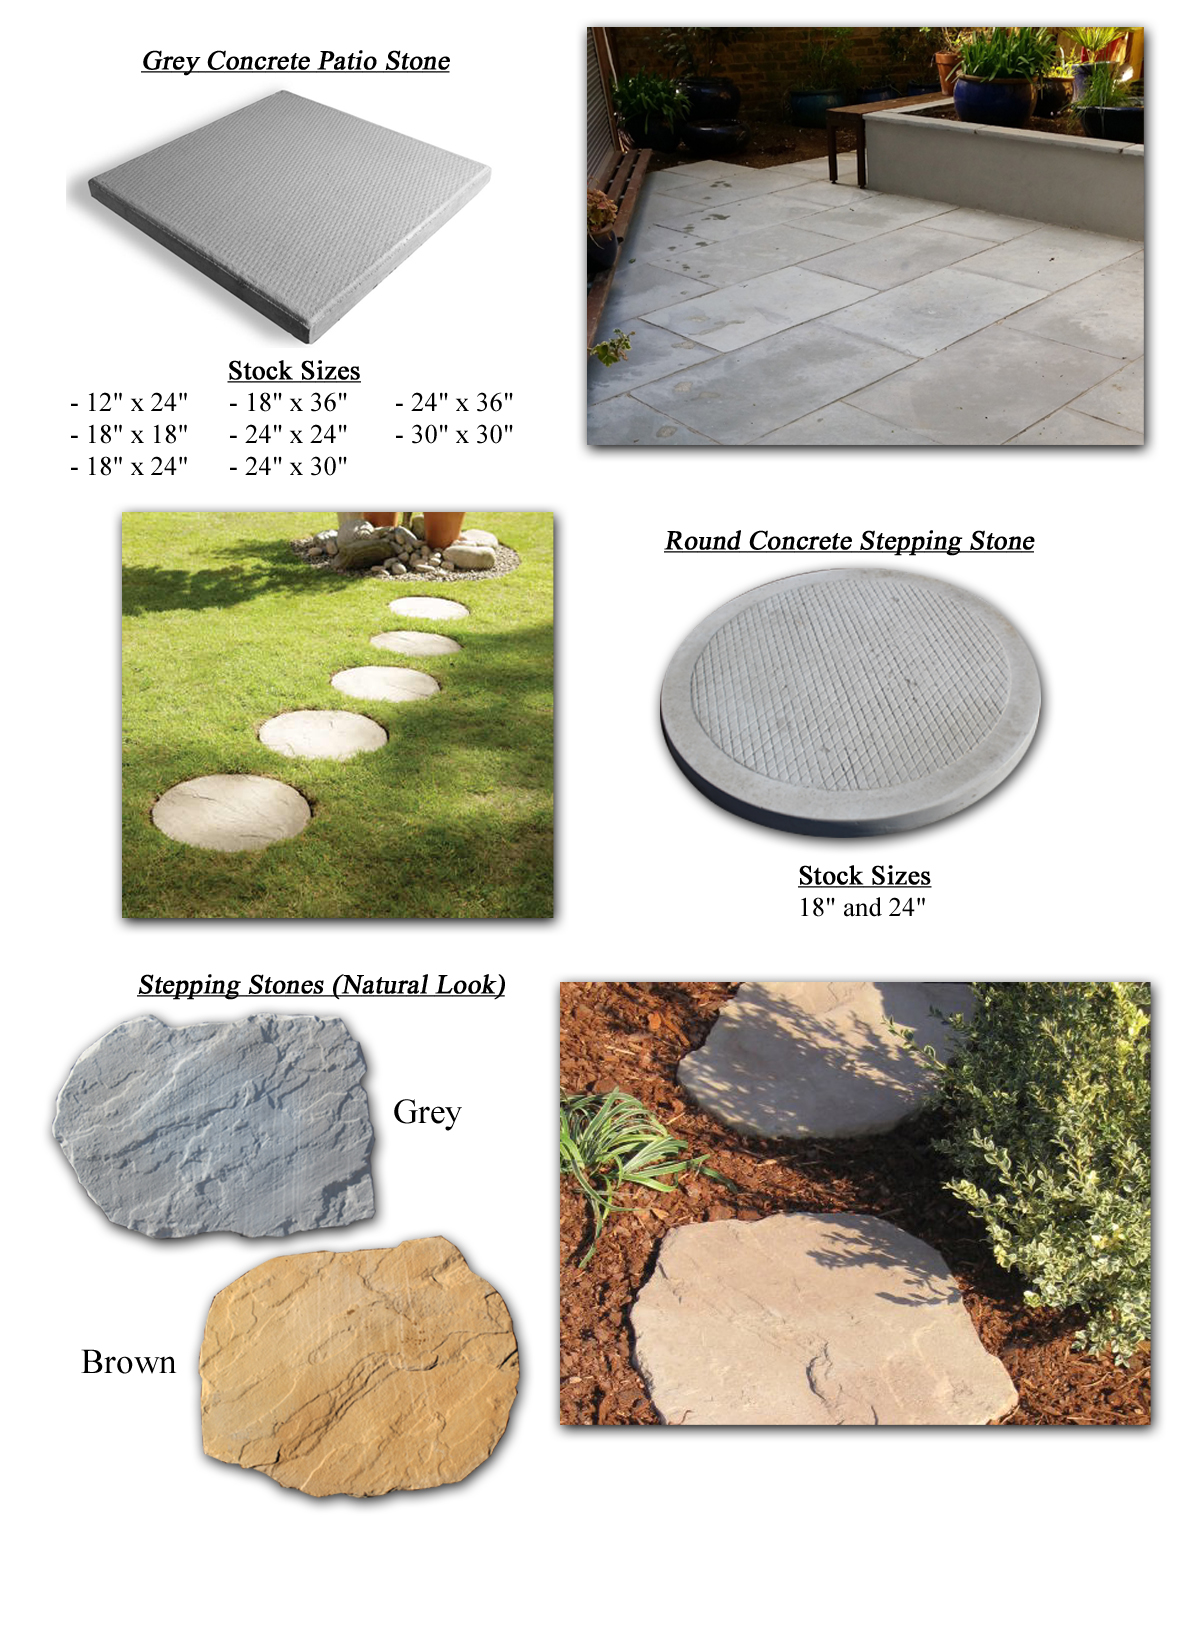 Patio/Stepping Stone Prevent6640 February 11, 2016 March 9, 2018